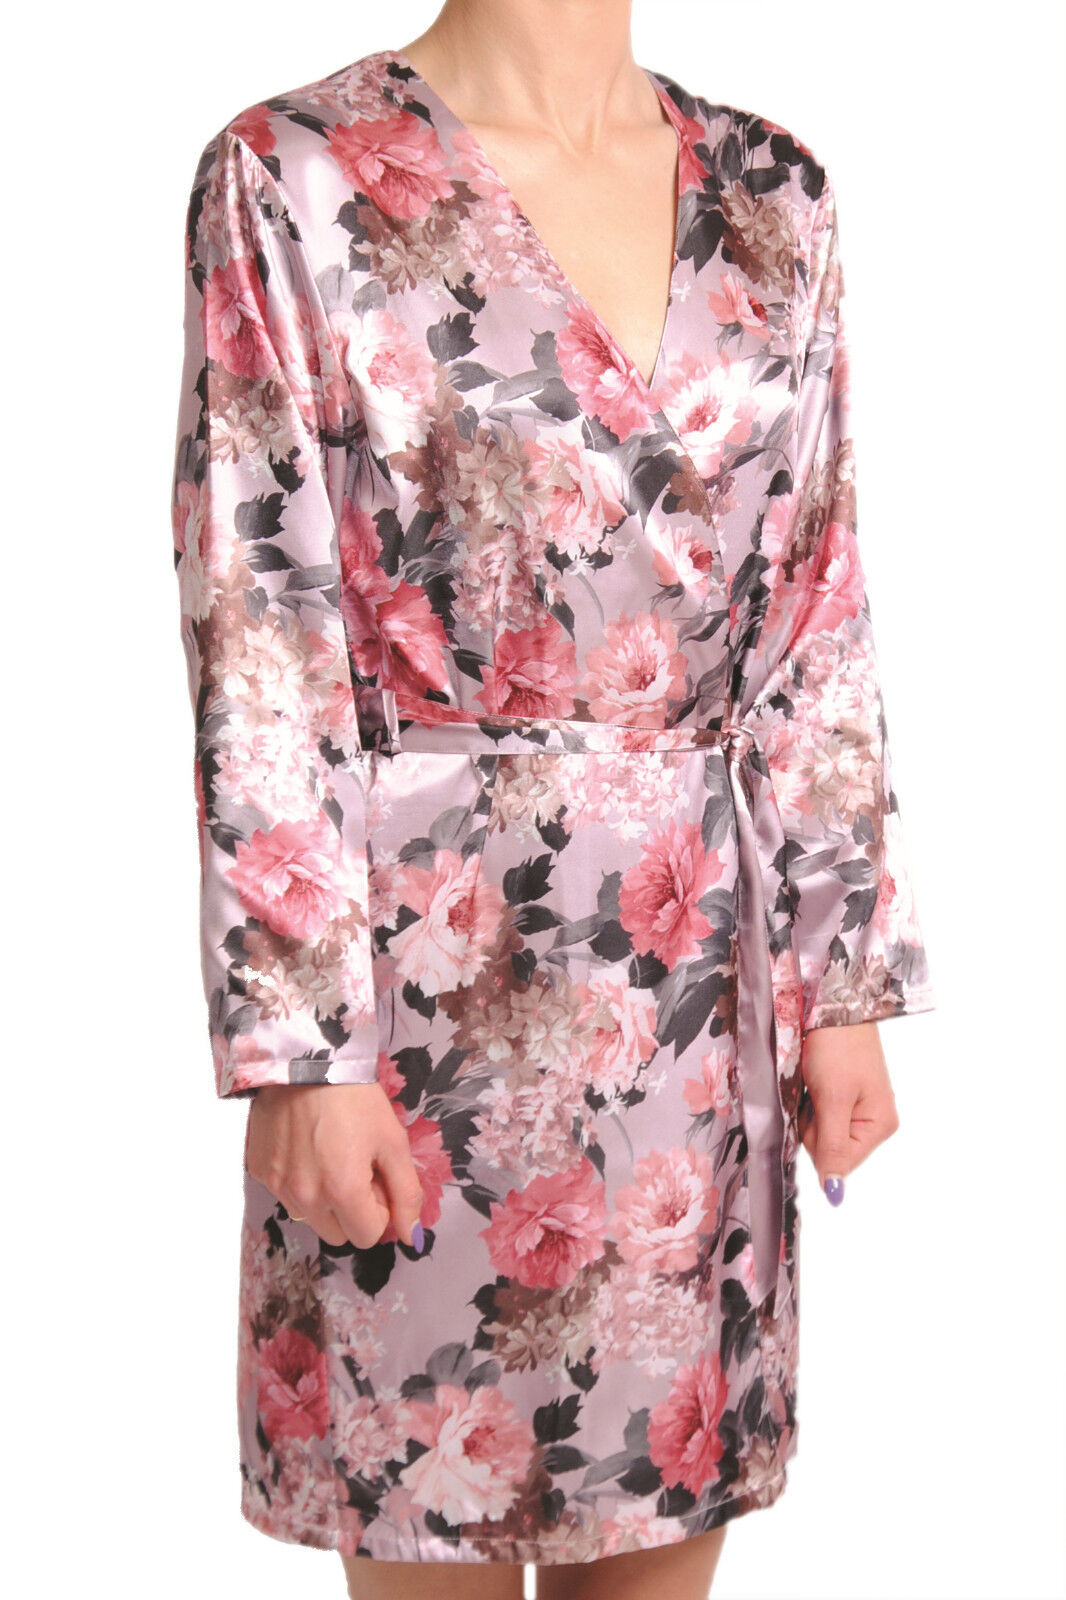 New Sleepwear Robe Dressing Gown From ROSME Collection